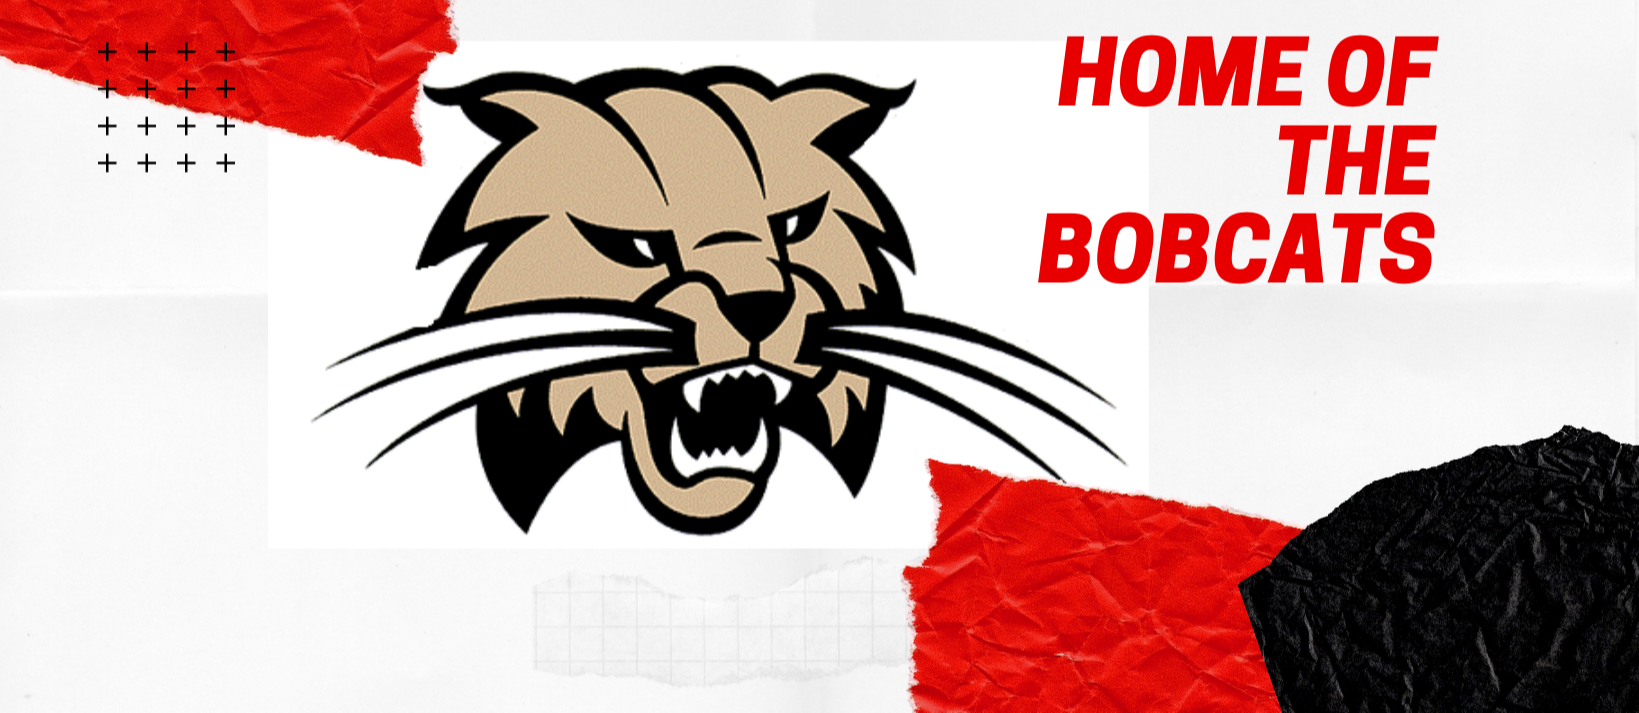 Home of the Bobcats with color image of Bobcat logo